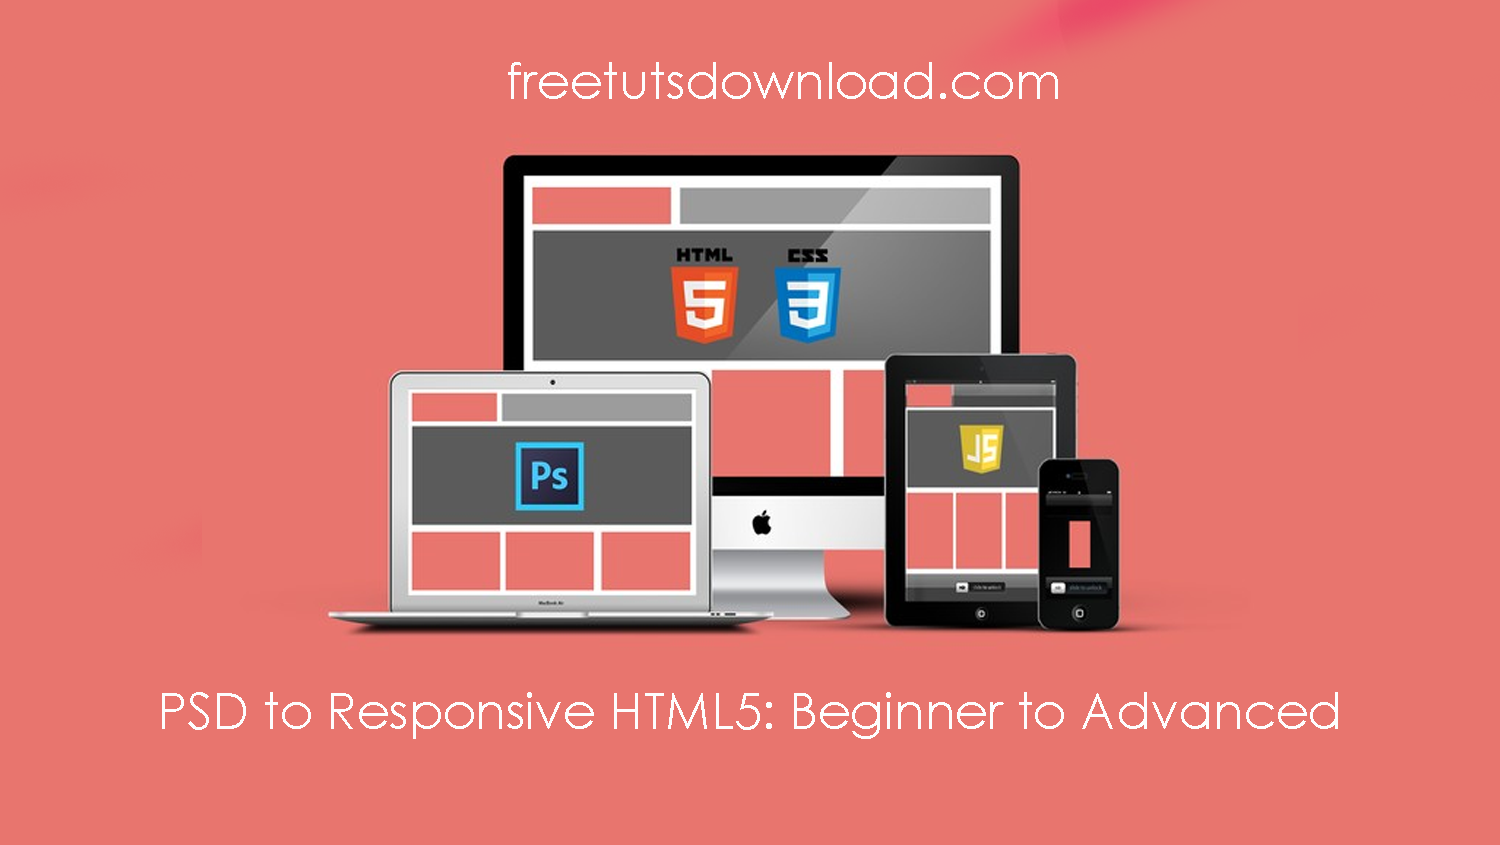 PSD to Responsive HTML5: Beginner to Advanced Free Download